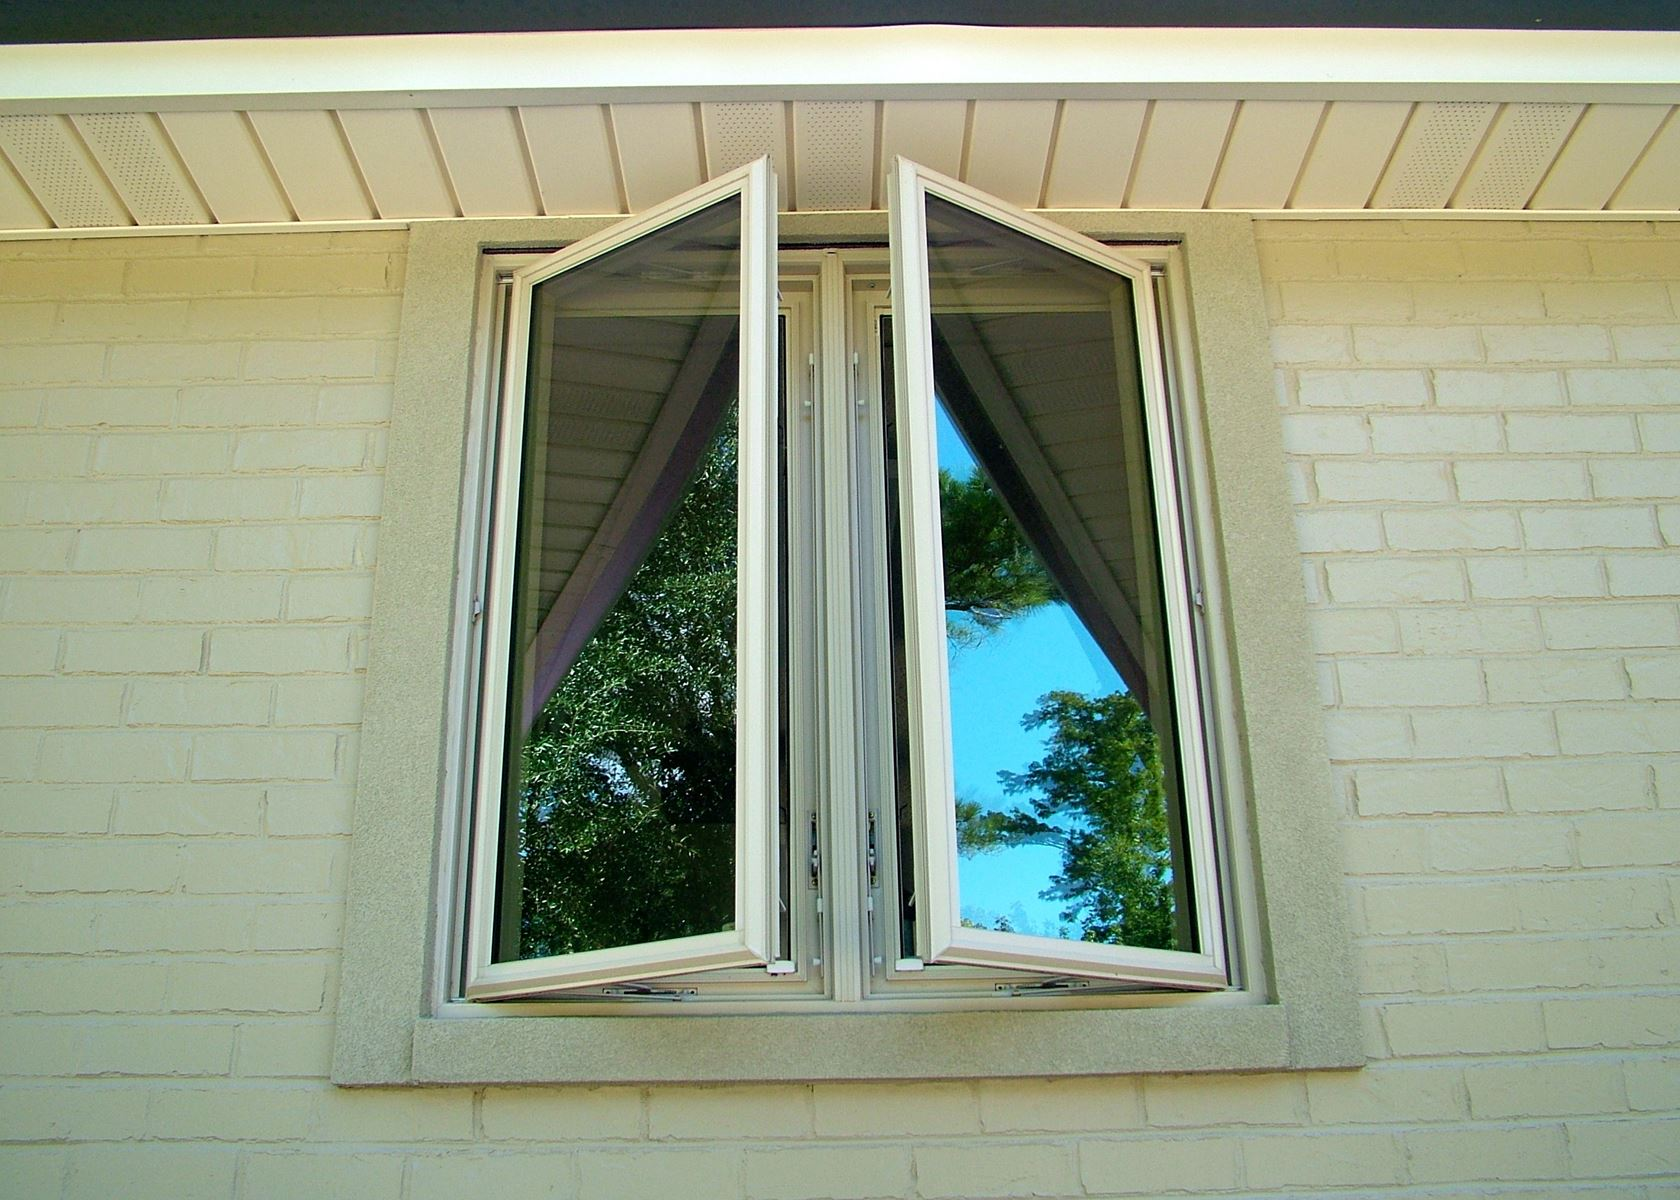 Remodeling ideas costs tips and for Replacement window design ideas